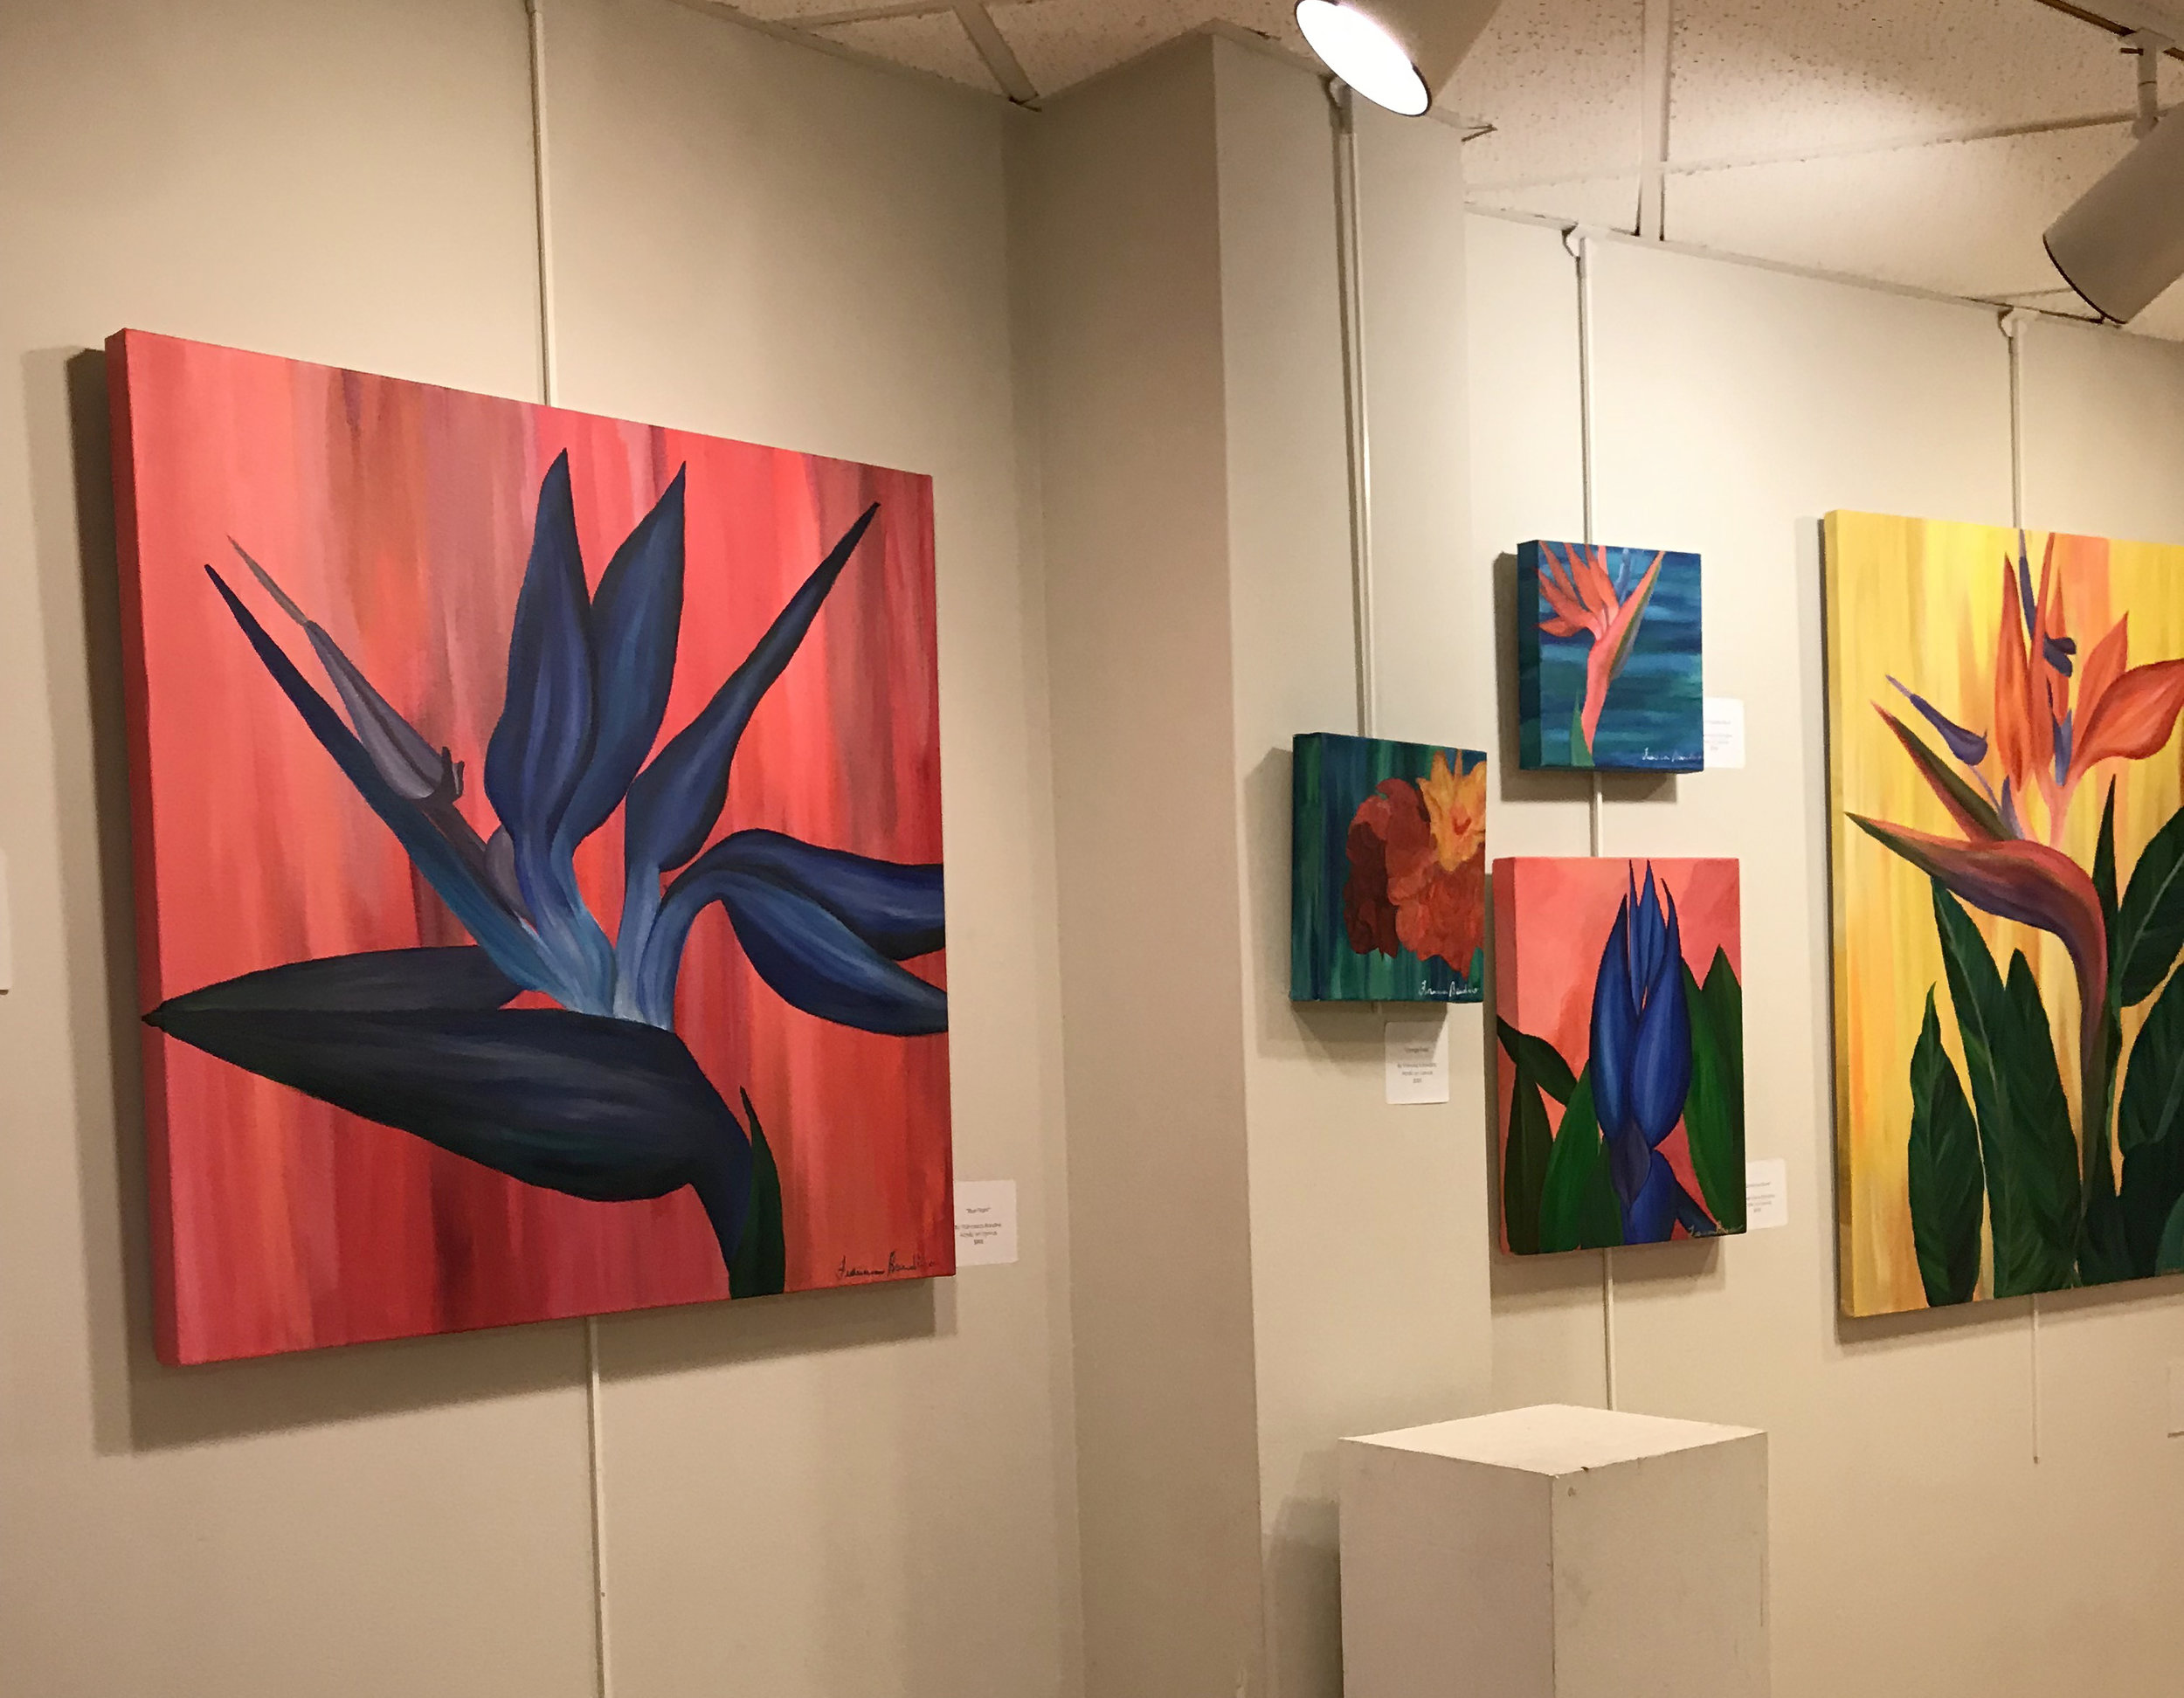 From left to right:  Blue Flight, Orange Rose, Bird of Paradise Blue, Voluptuous Blues, Dual Complexity